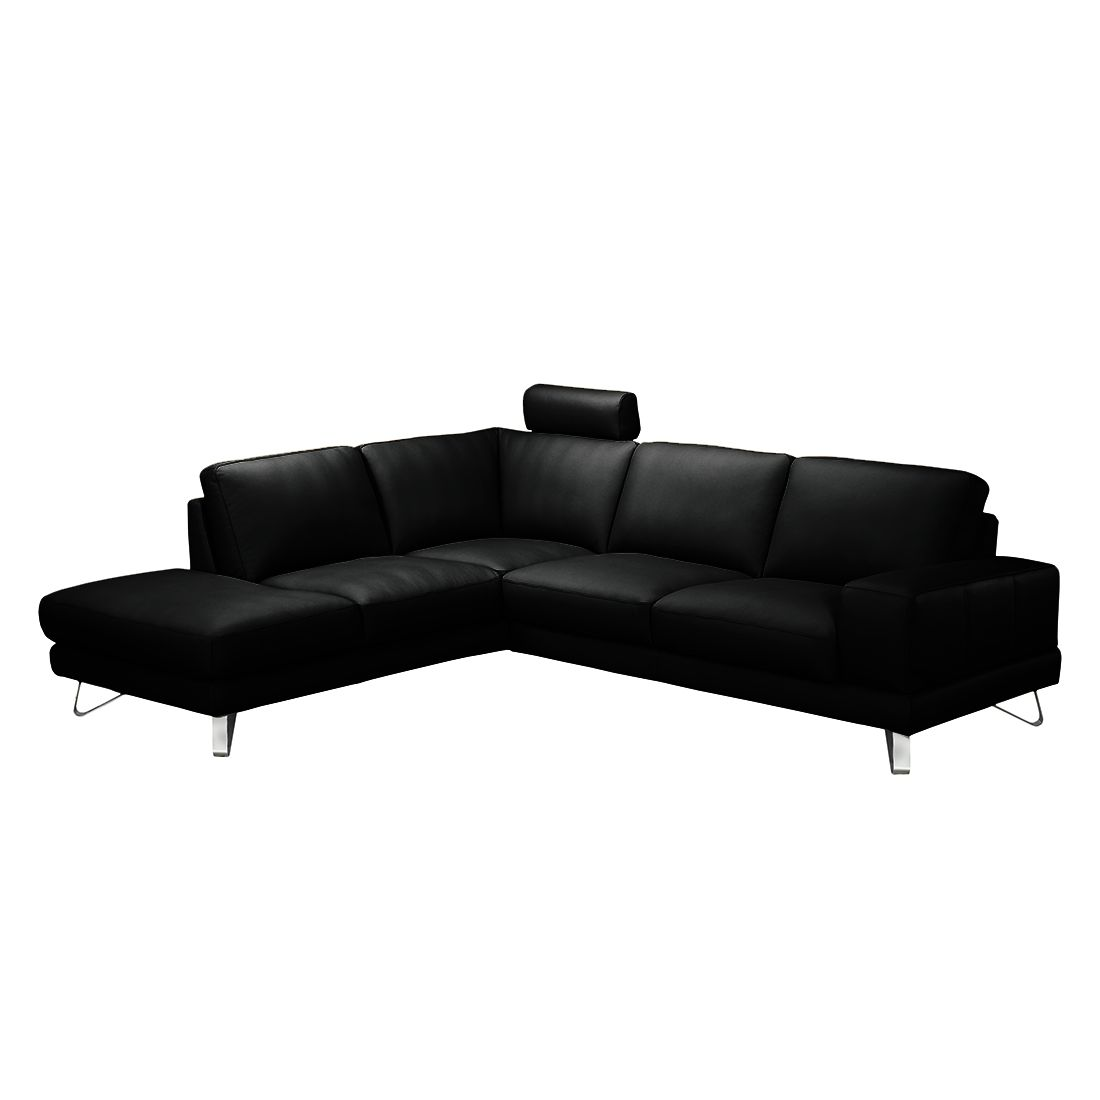 ecksofa bradley kunstleder schwarz ottomane. Black Bedroom Furniture Sets. Home Design Ideas